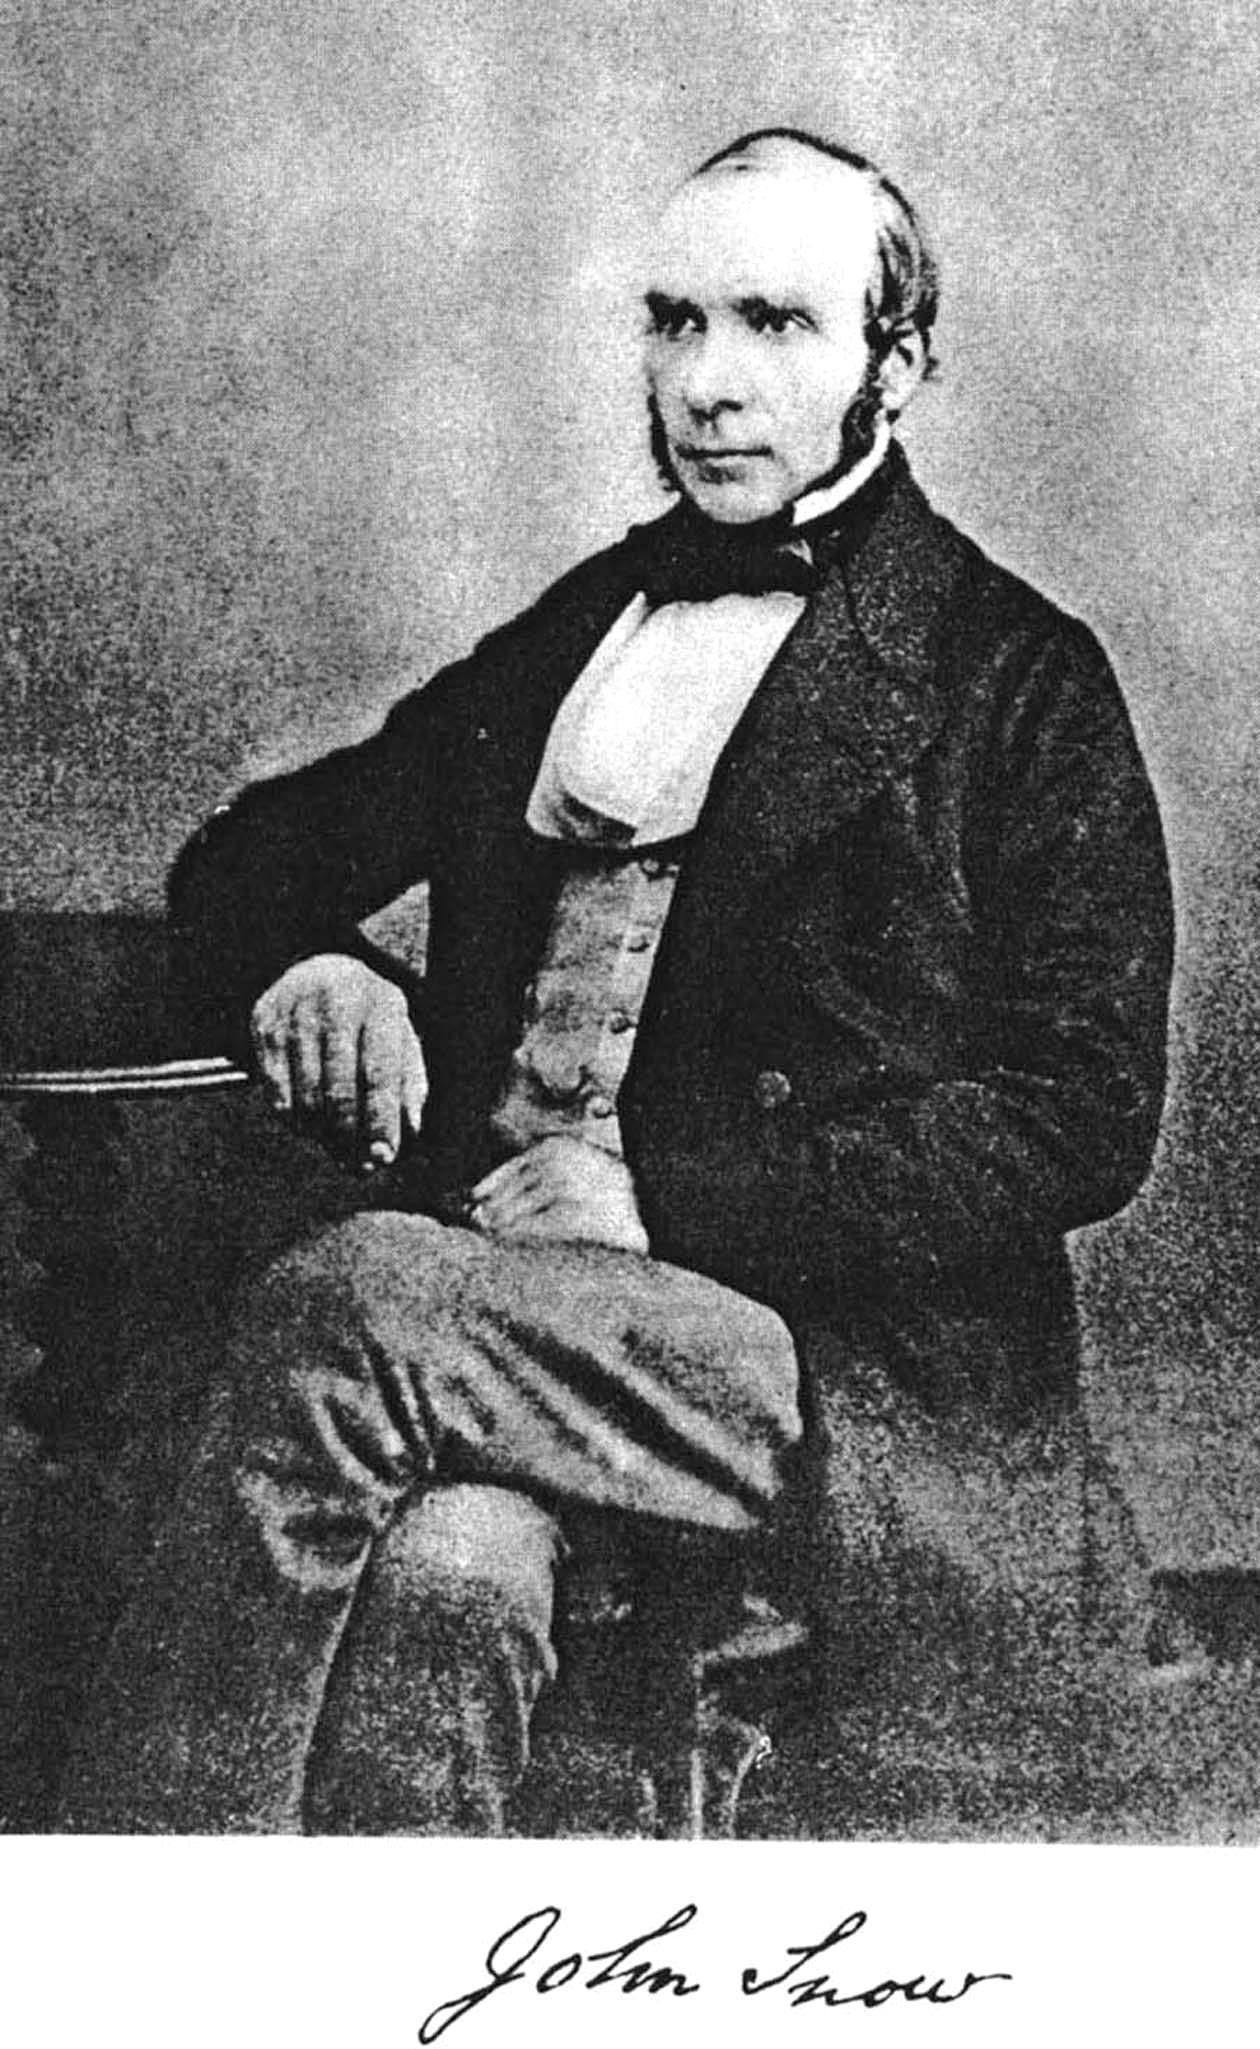 john snow cholera Start studying john snow learn vocabulary, terms, and more with flashcards, games, and other study tools.